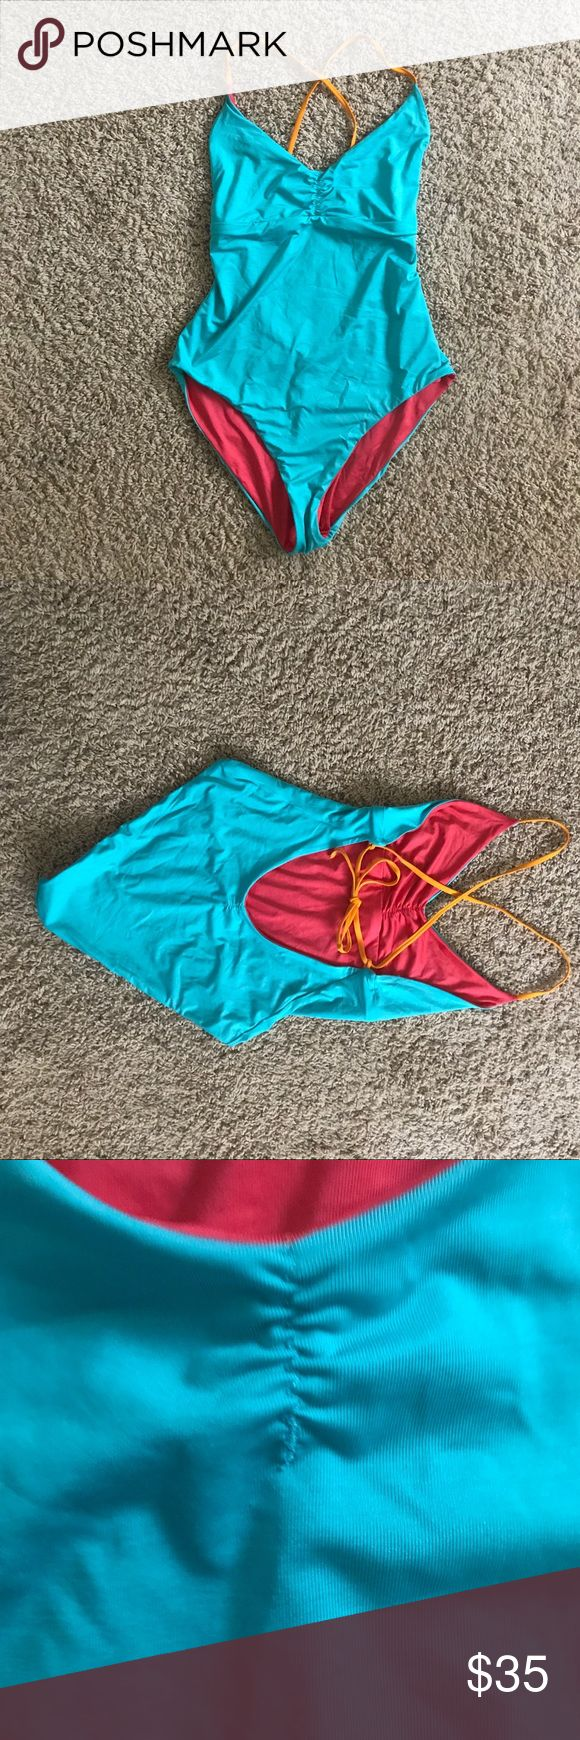 Patagonia one piece bathing suit, reversible! Lovely teal or pink bathing suit form Patagonia 2 bathing suits in 1! From last summer. This was one of those aspirational purchases but my butt will just never fit in this. Reversible and with yellow accent for the halter. There is a little extra thread you can see in two of the photos but it does effect the integrity of the garment; you can snip them off once this suit is yours! Last pic is not mine but is the style name from Patagonias…